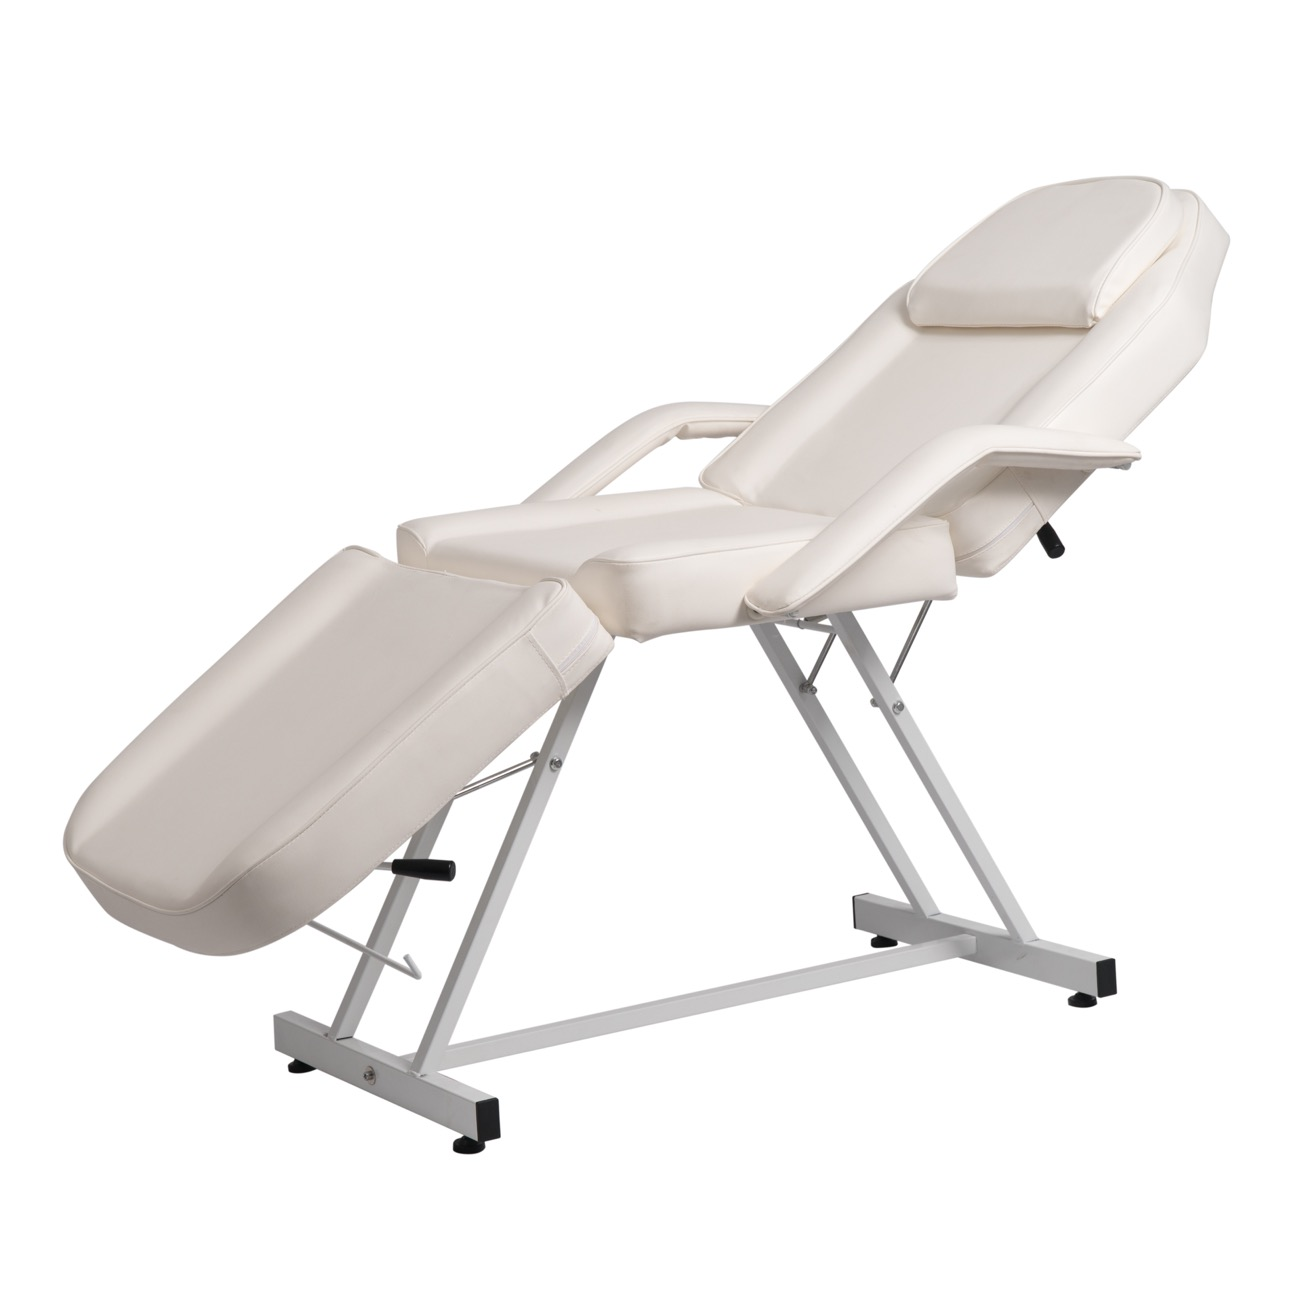 Adjustable Facial Bed Table Massage Chair Beauty Spa